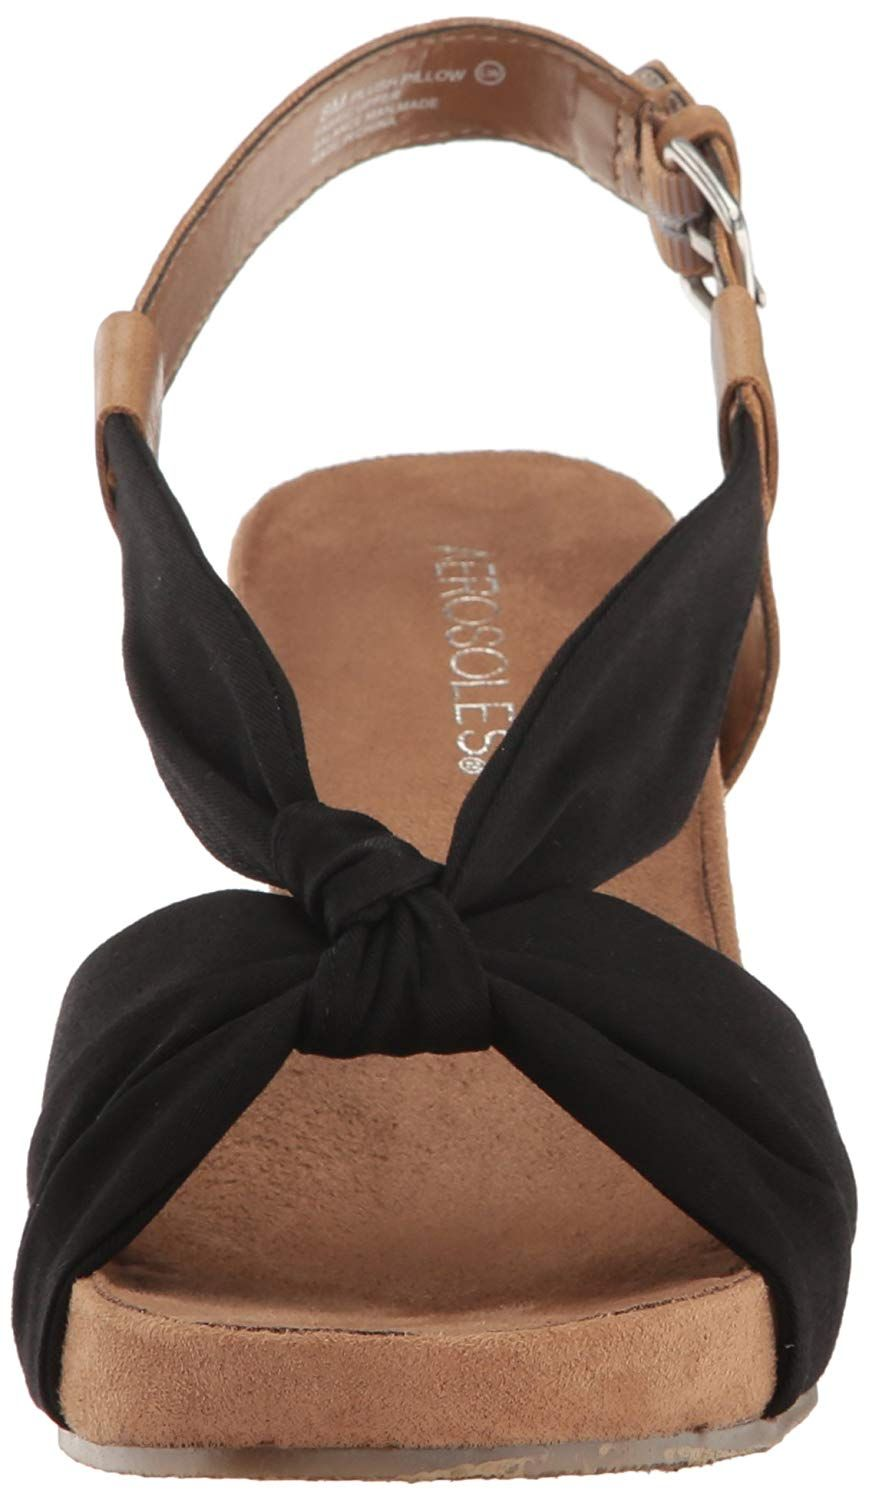 29887c650911 Naot Women s Jessica Wedge Sandal   You can get more details by clicking on  the image. (This is an affiliate link)  vacationoutfit